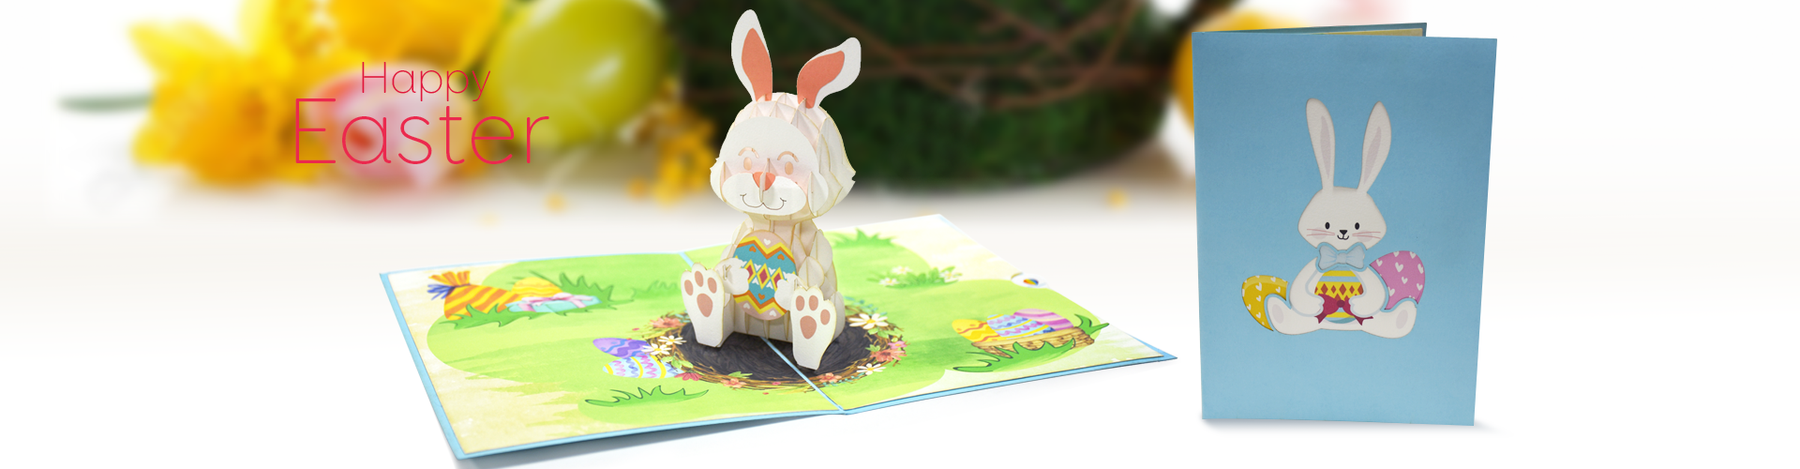 Bunny-pop-up-card-Easter-Blog.png